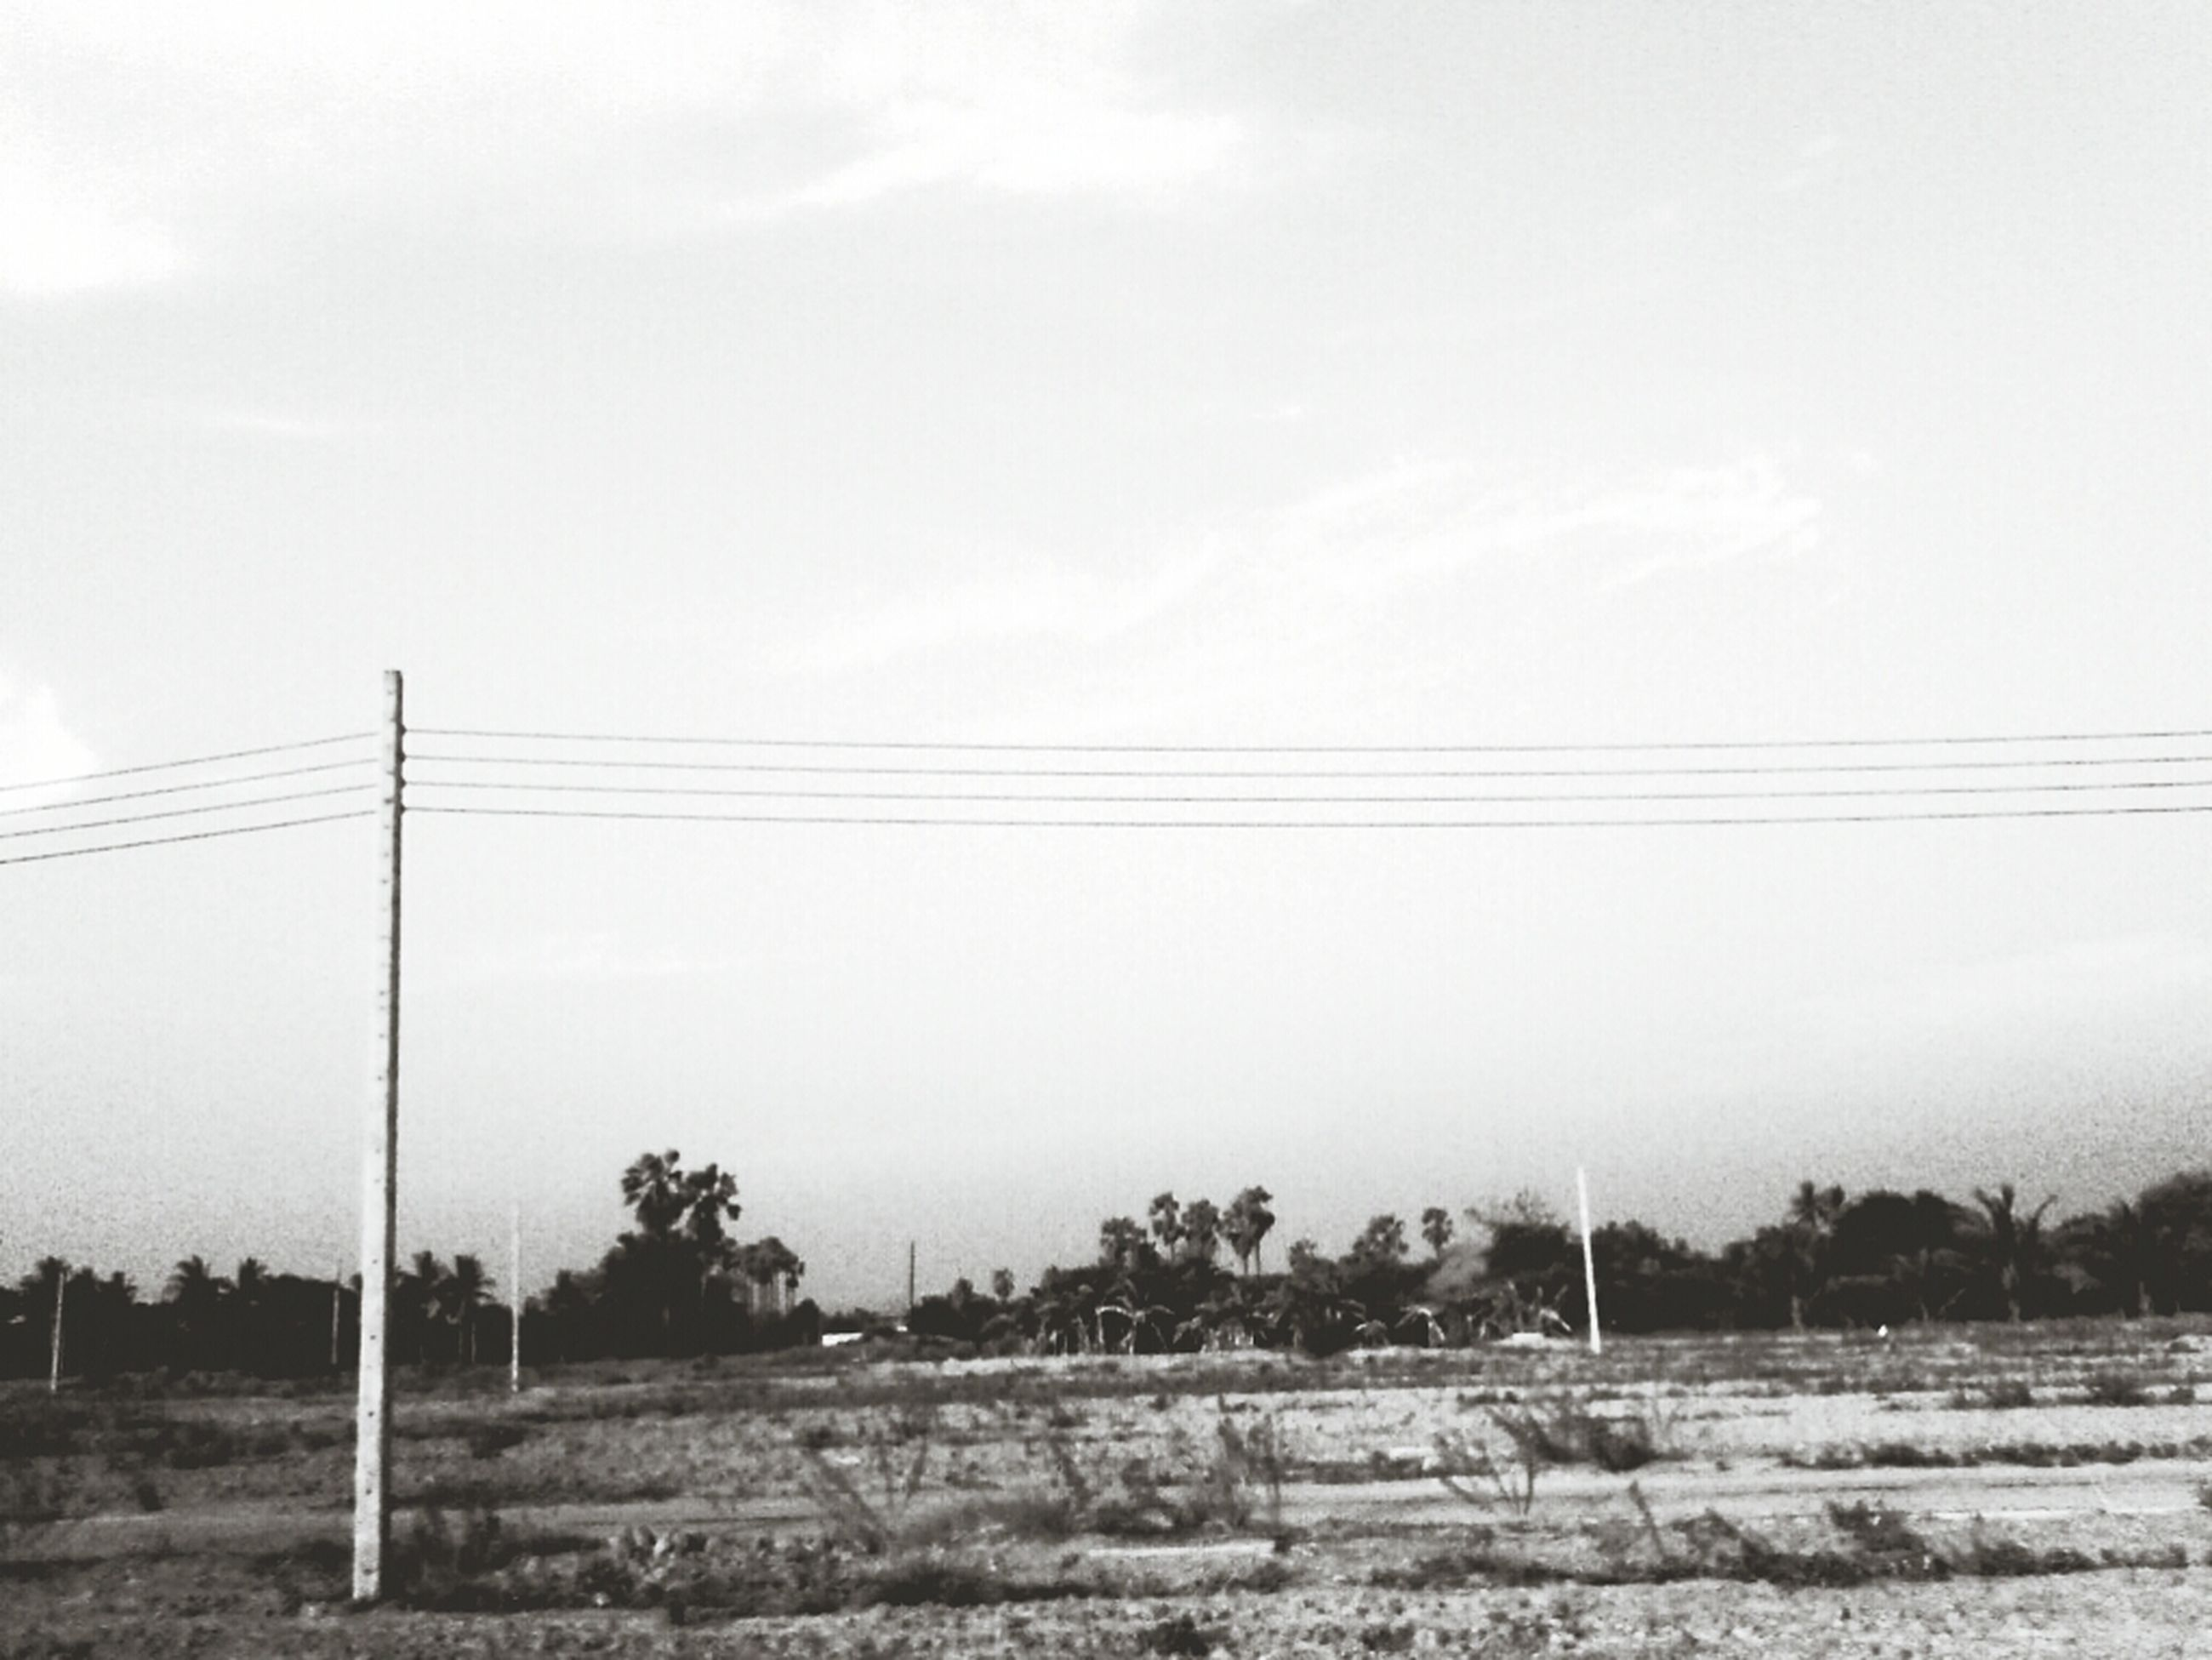 power line, electricity pylon, cable, electricity, power supply, sky, fuel and power generation, connection, tranquility, landscape, tranquil scene, tree, field, nature, power cable, scenics, technology, beauty in nature, day, outdoors